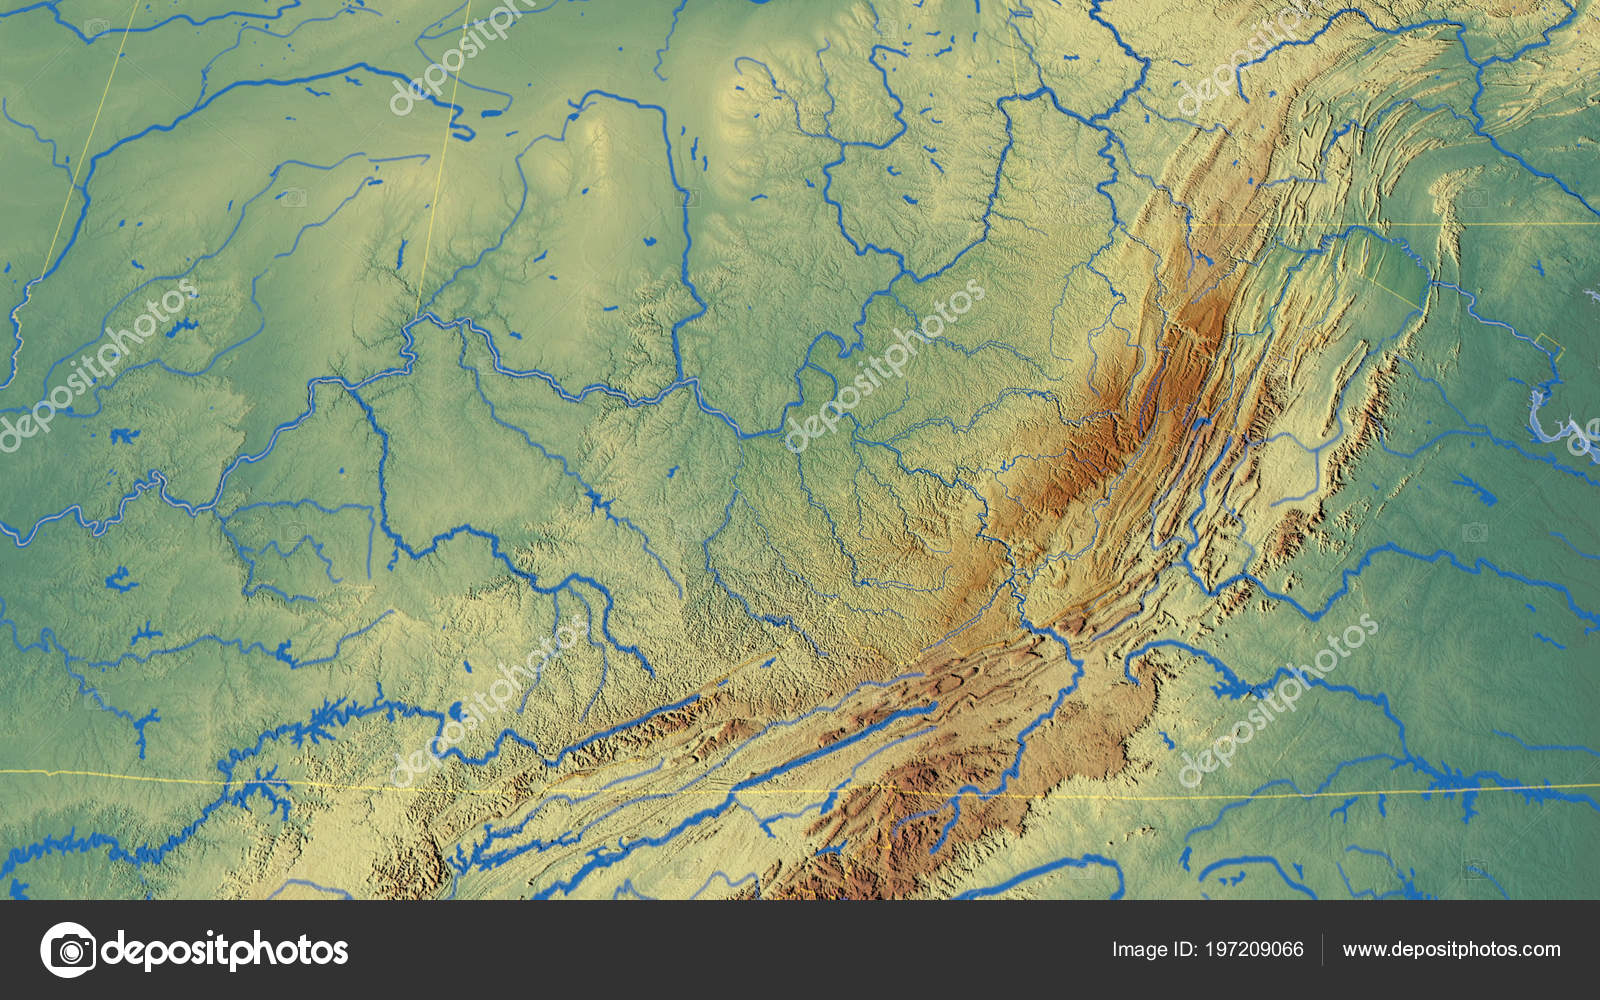 Relief Map Of Virginia.West Virginia Region United States Outlined Topographic Relief Map